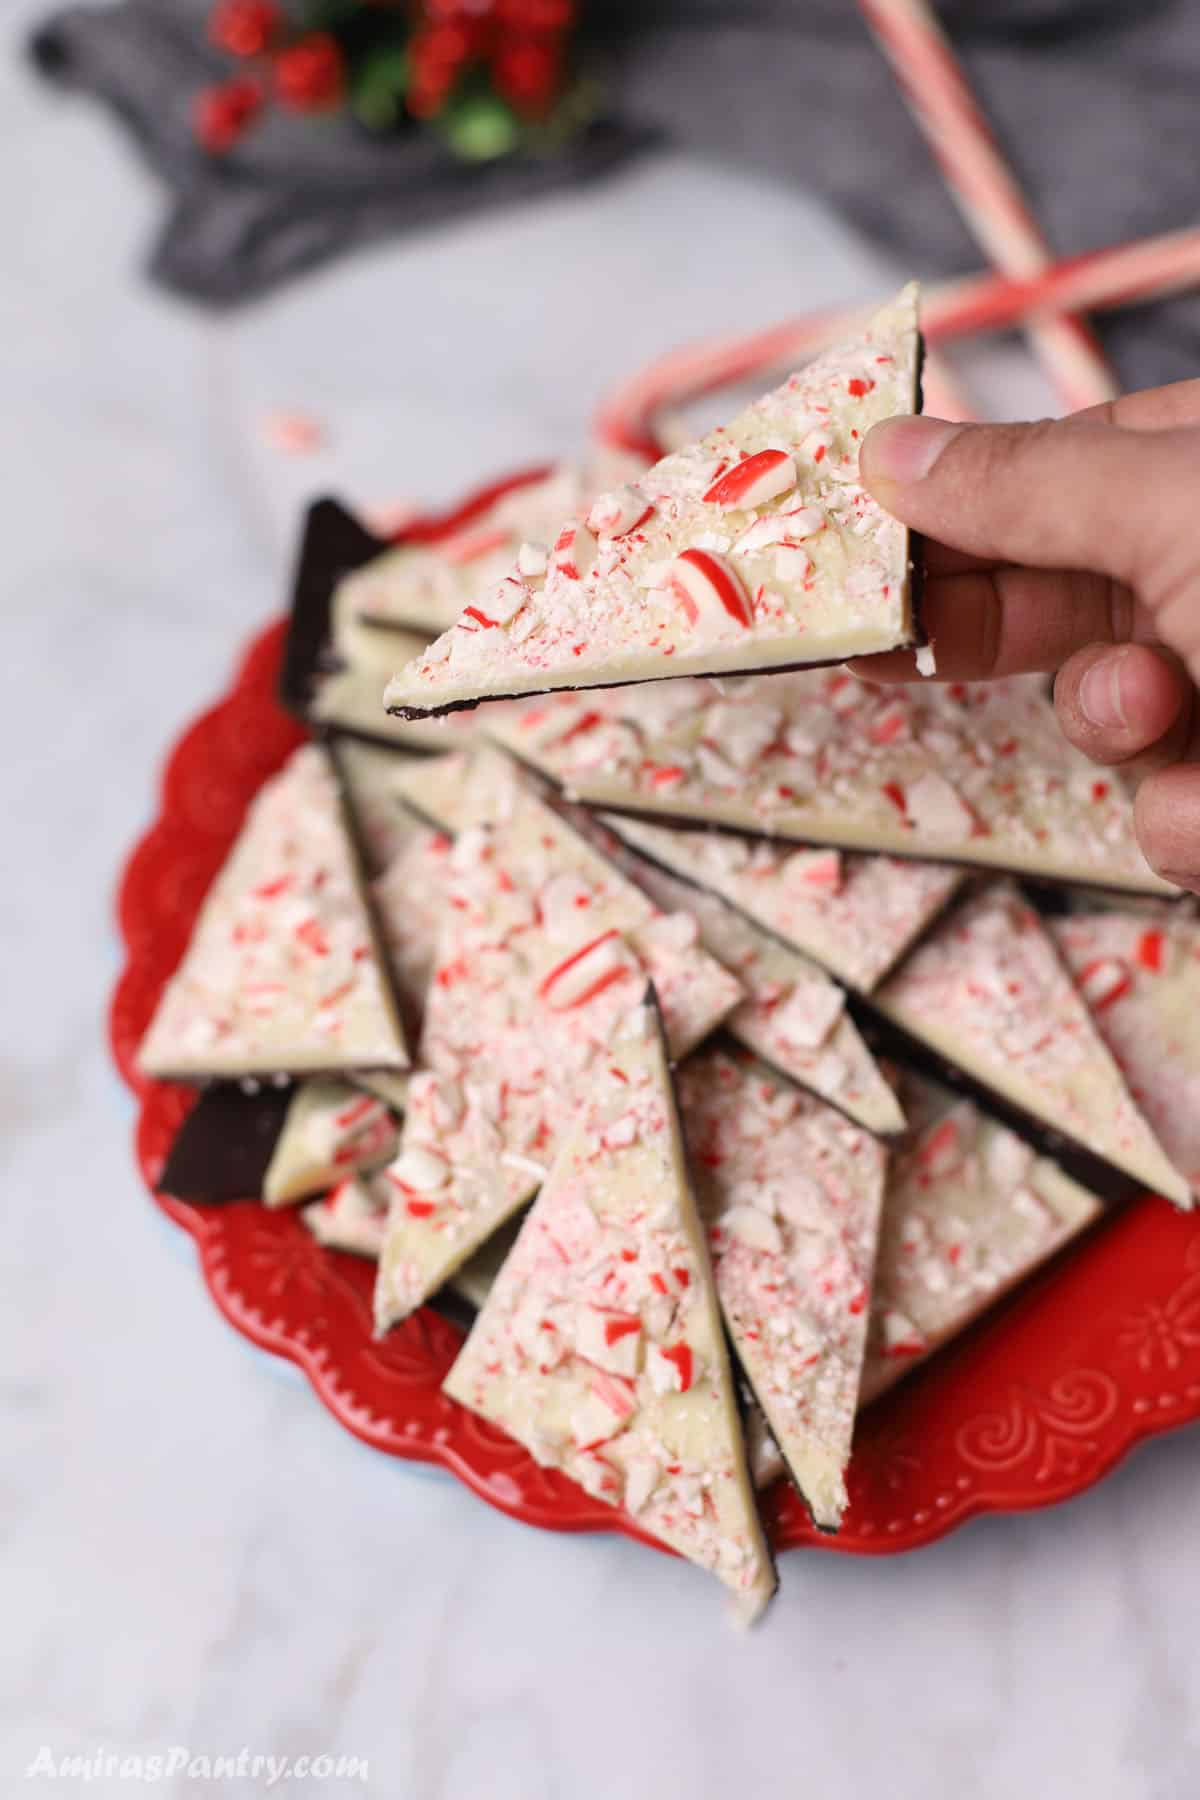 A hand holding a piece of peppermint bark with the rest in a red plate on a white marble table.